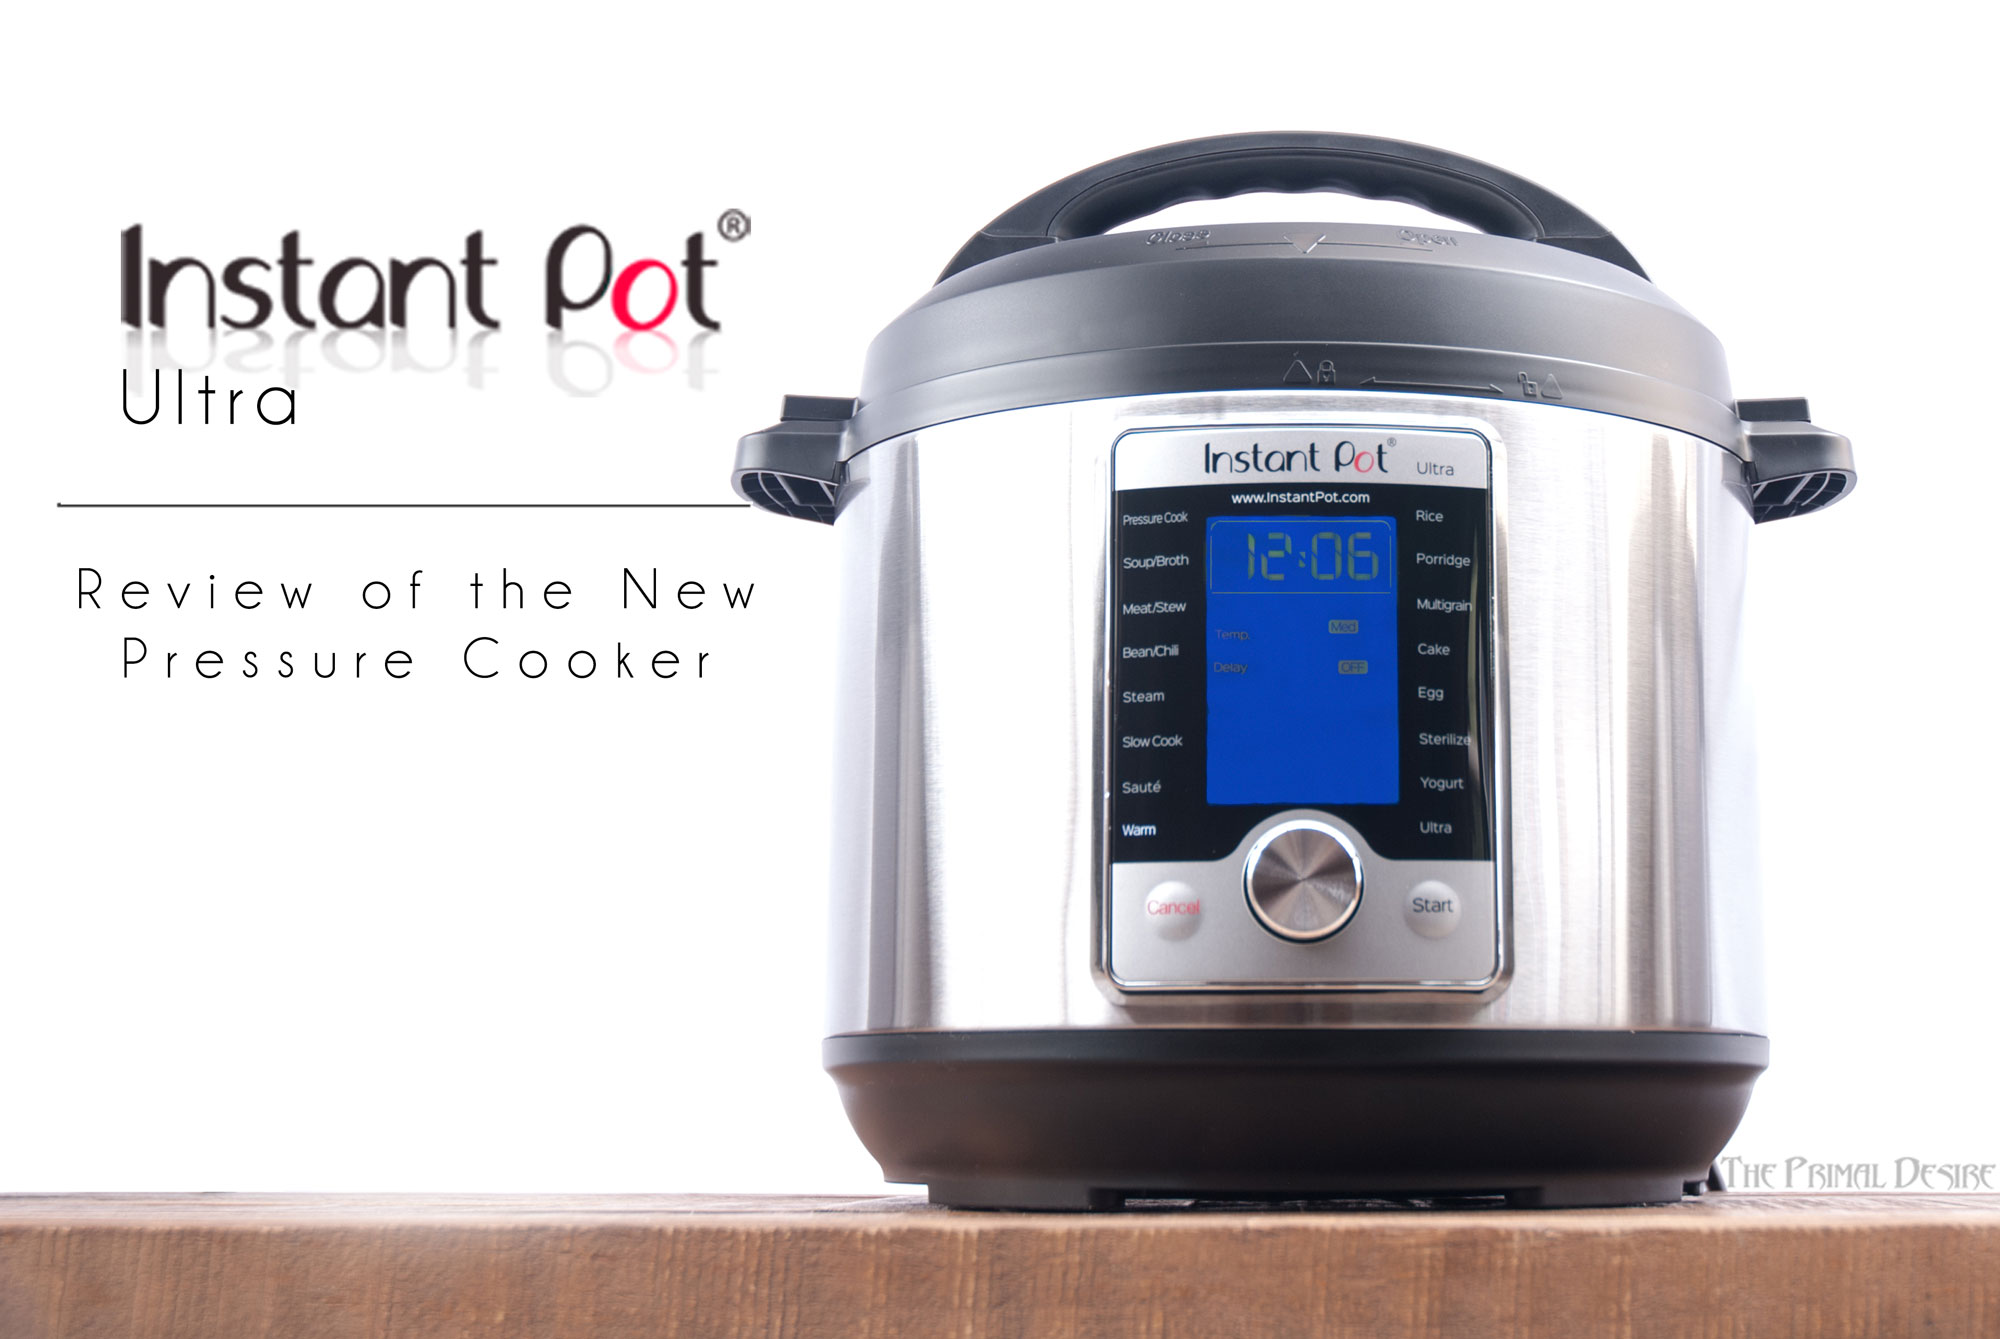 Instant Pot Ultra - Review of the New Pressure Cooker https://wp.me/p4Aygm-2Fn